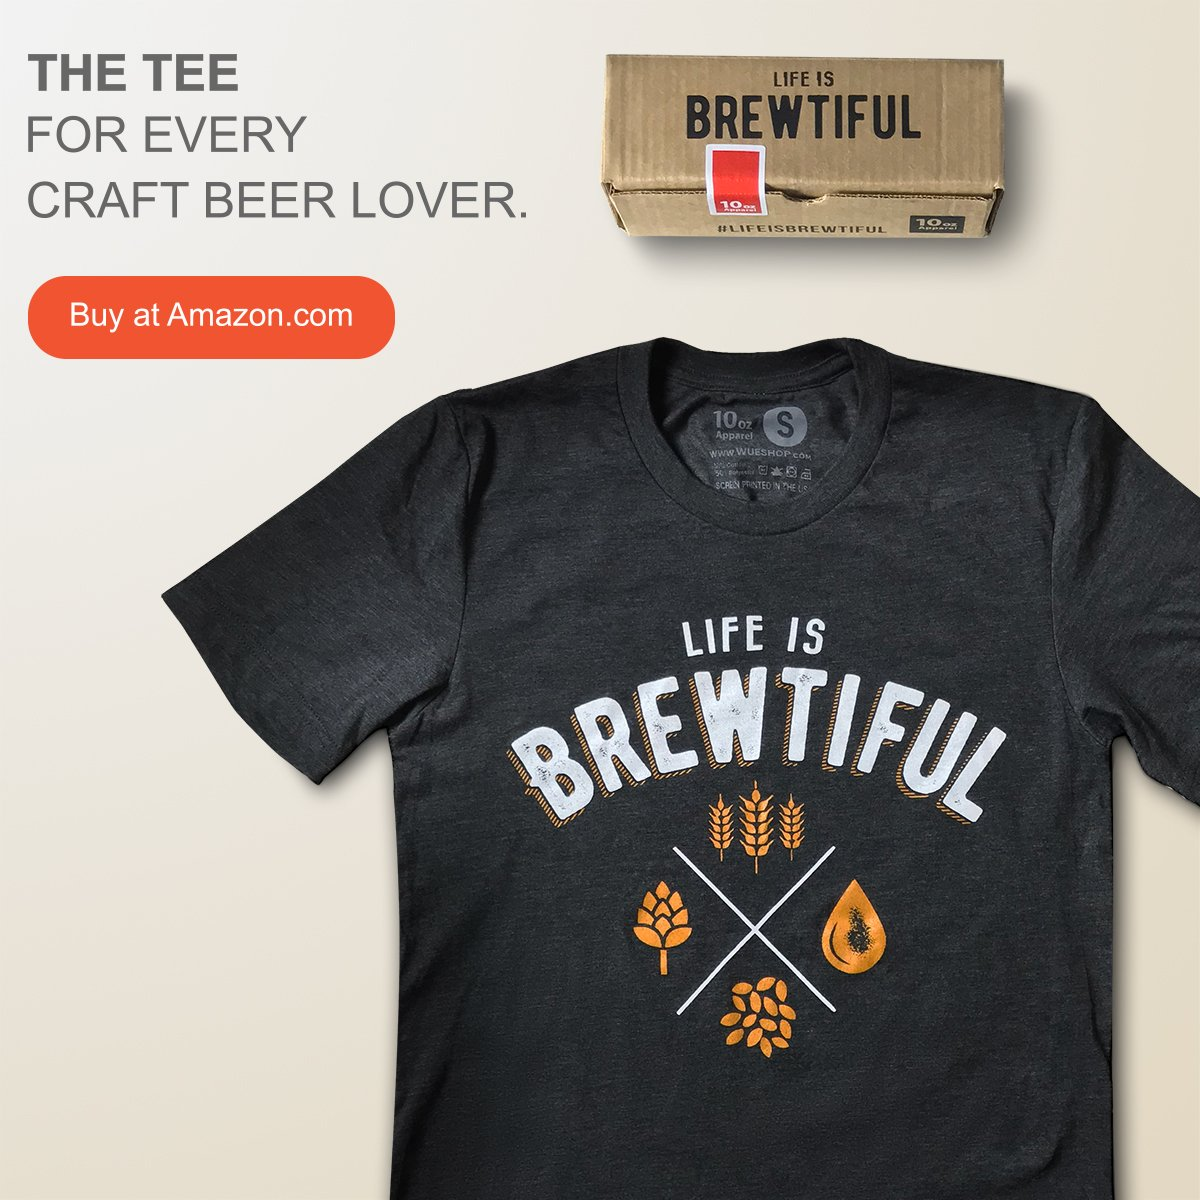 life is brewtiful tshirt set